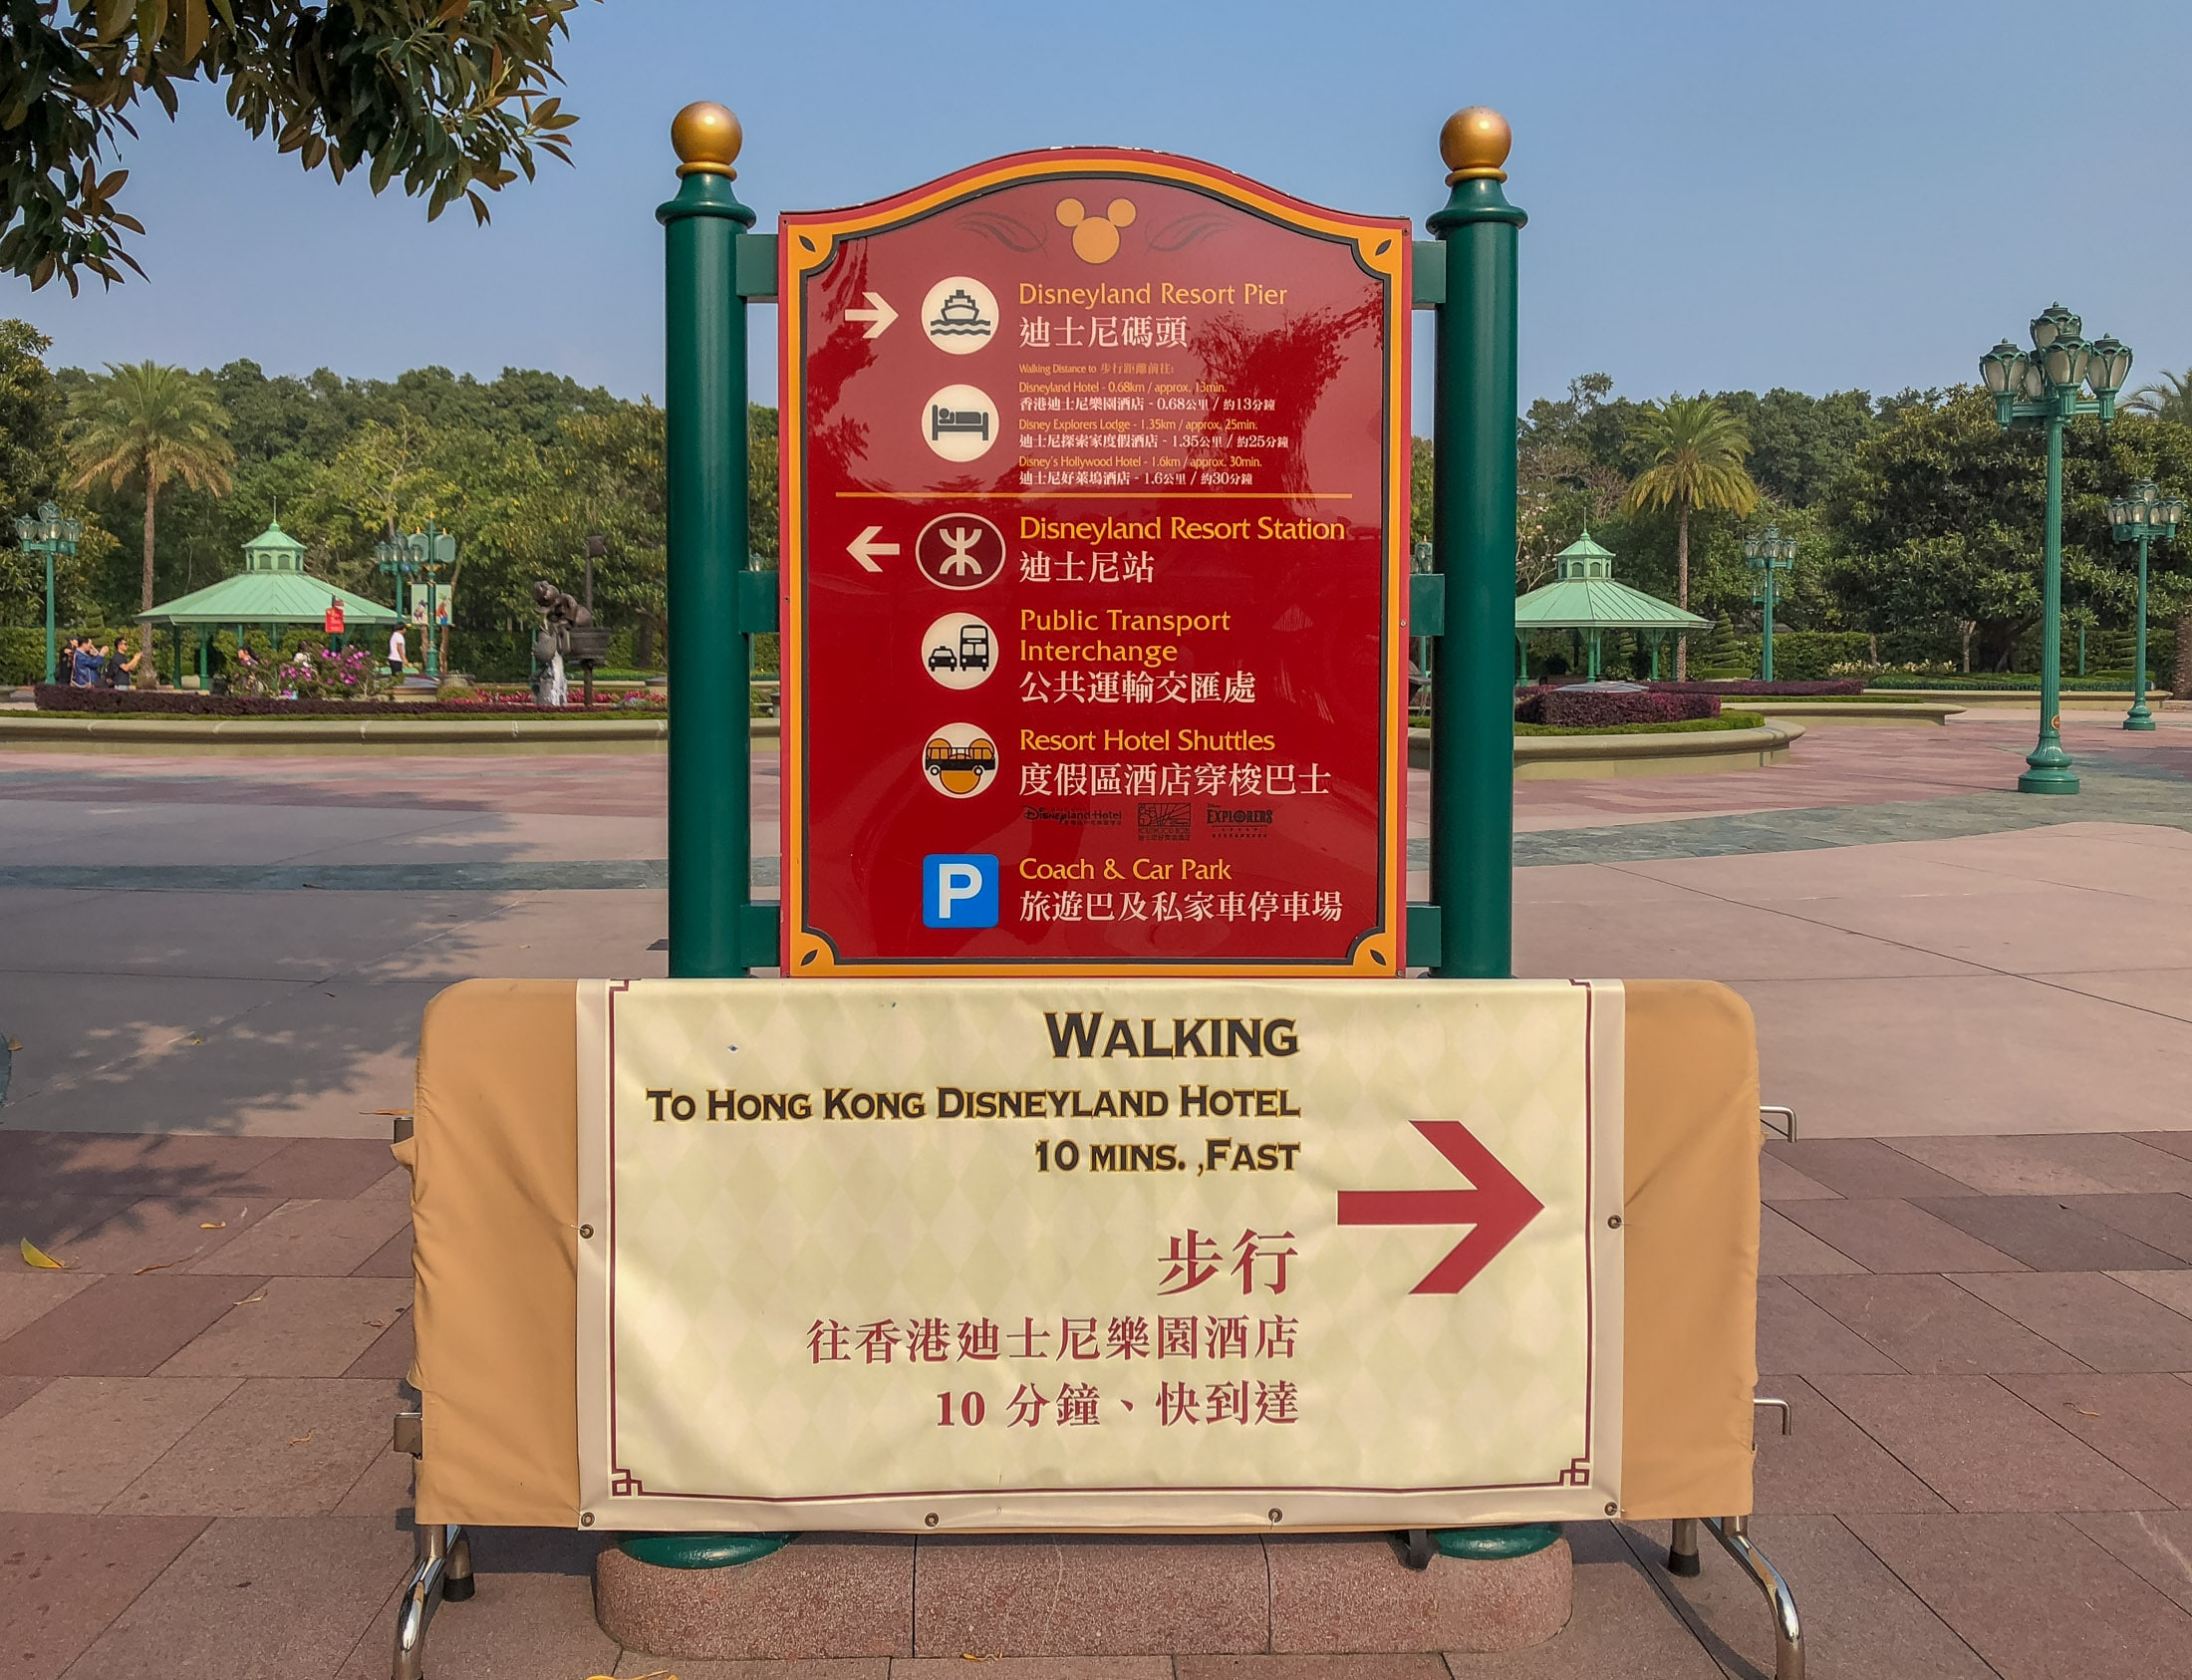 How to walk to Hong Kong Disneyland hotels.